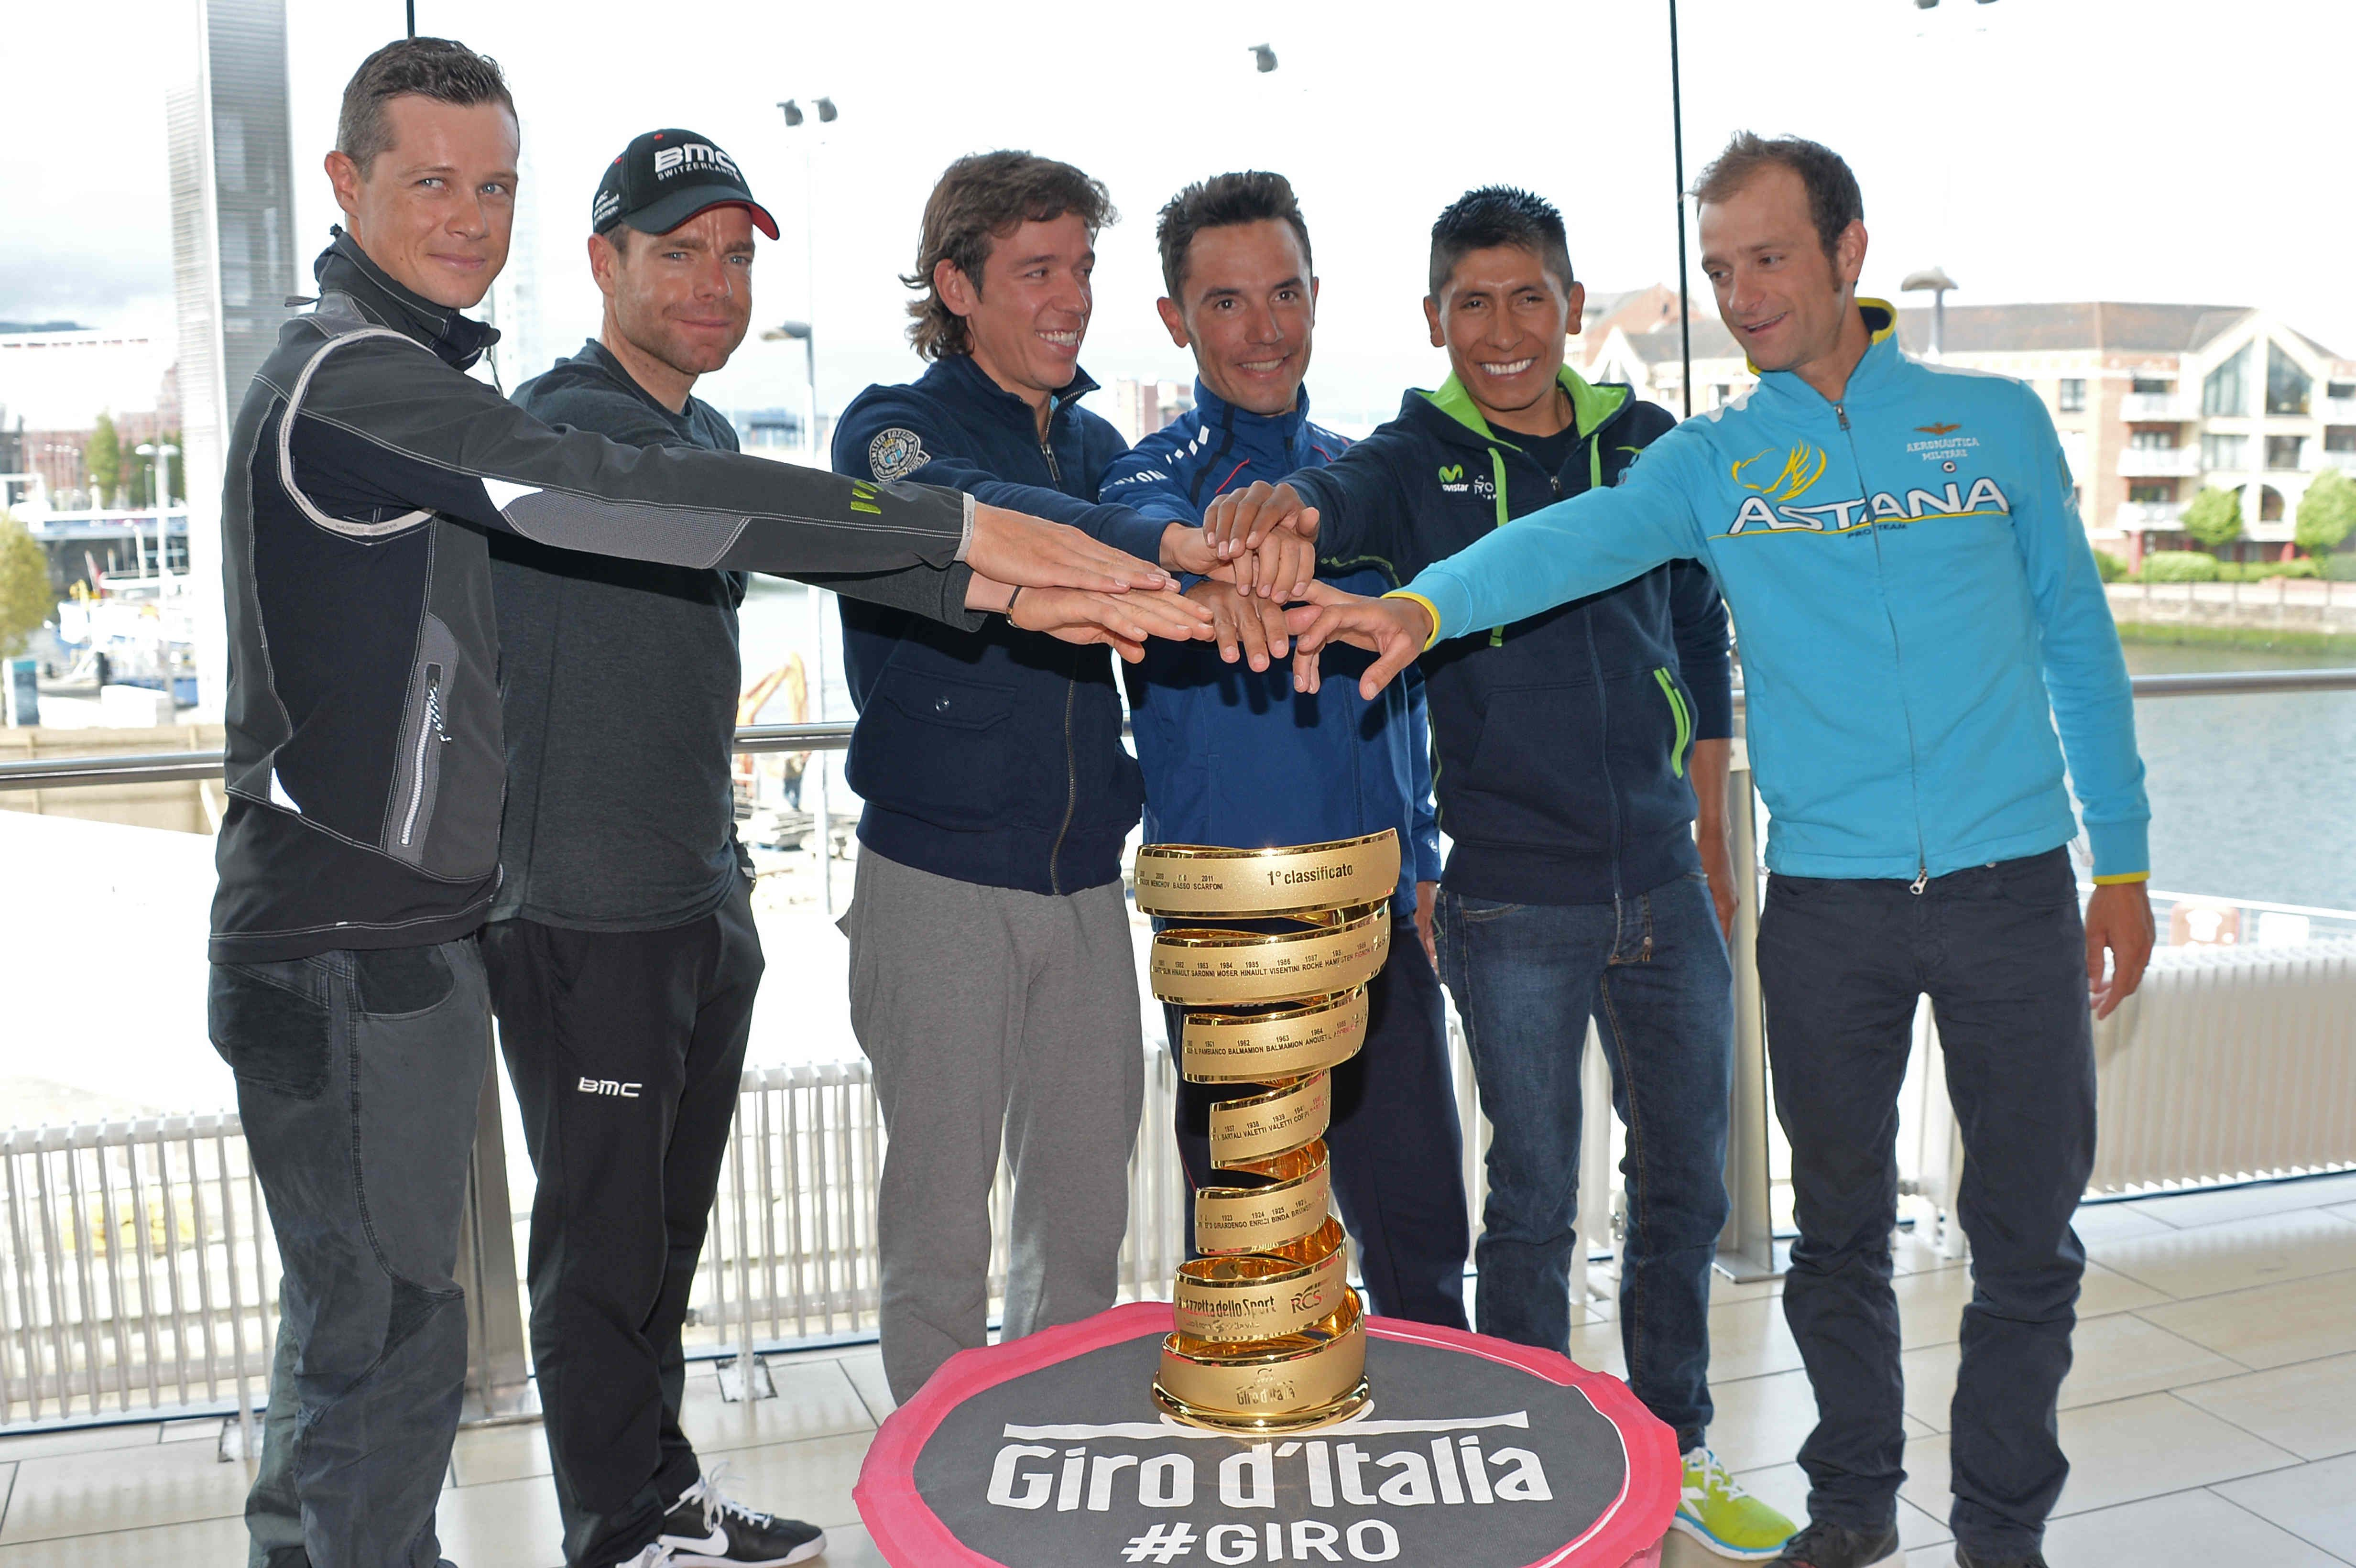 Members of Giro D'Italia getting ready for the race.